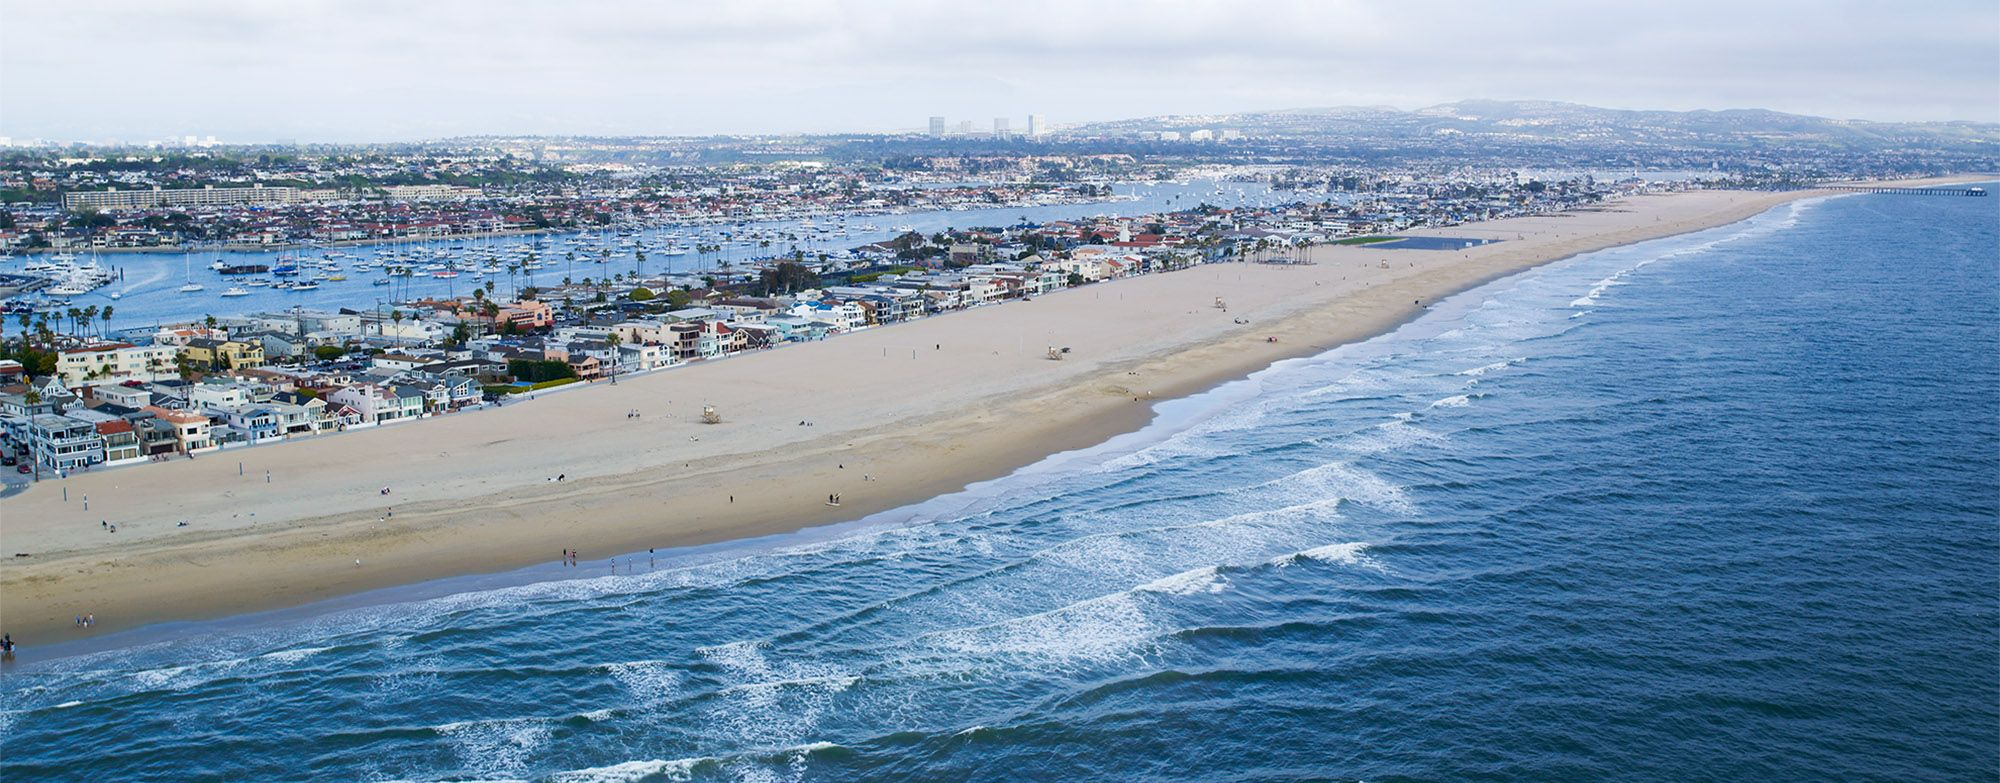 View of Newport Beach from visitnewportbeach.com